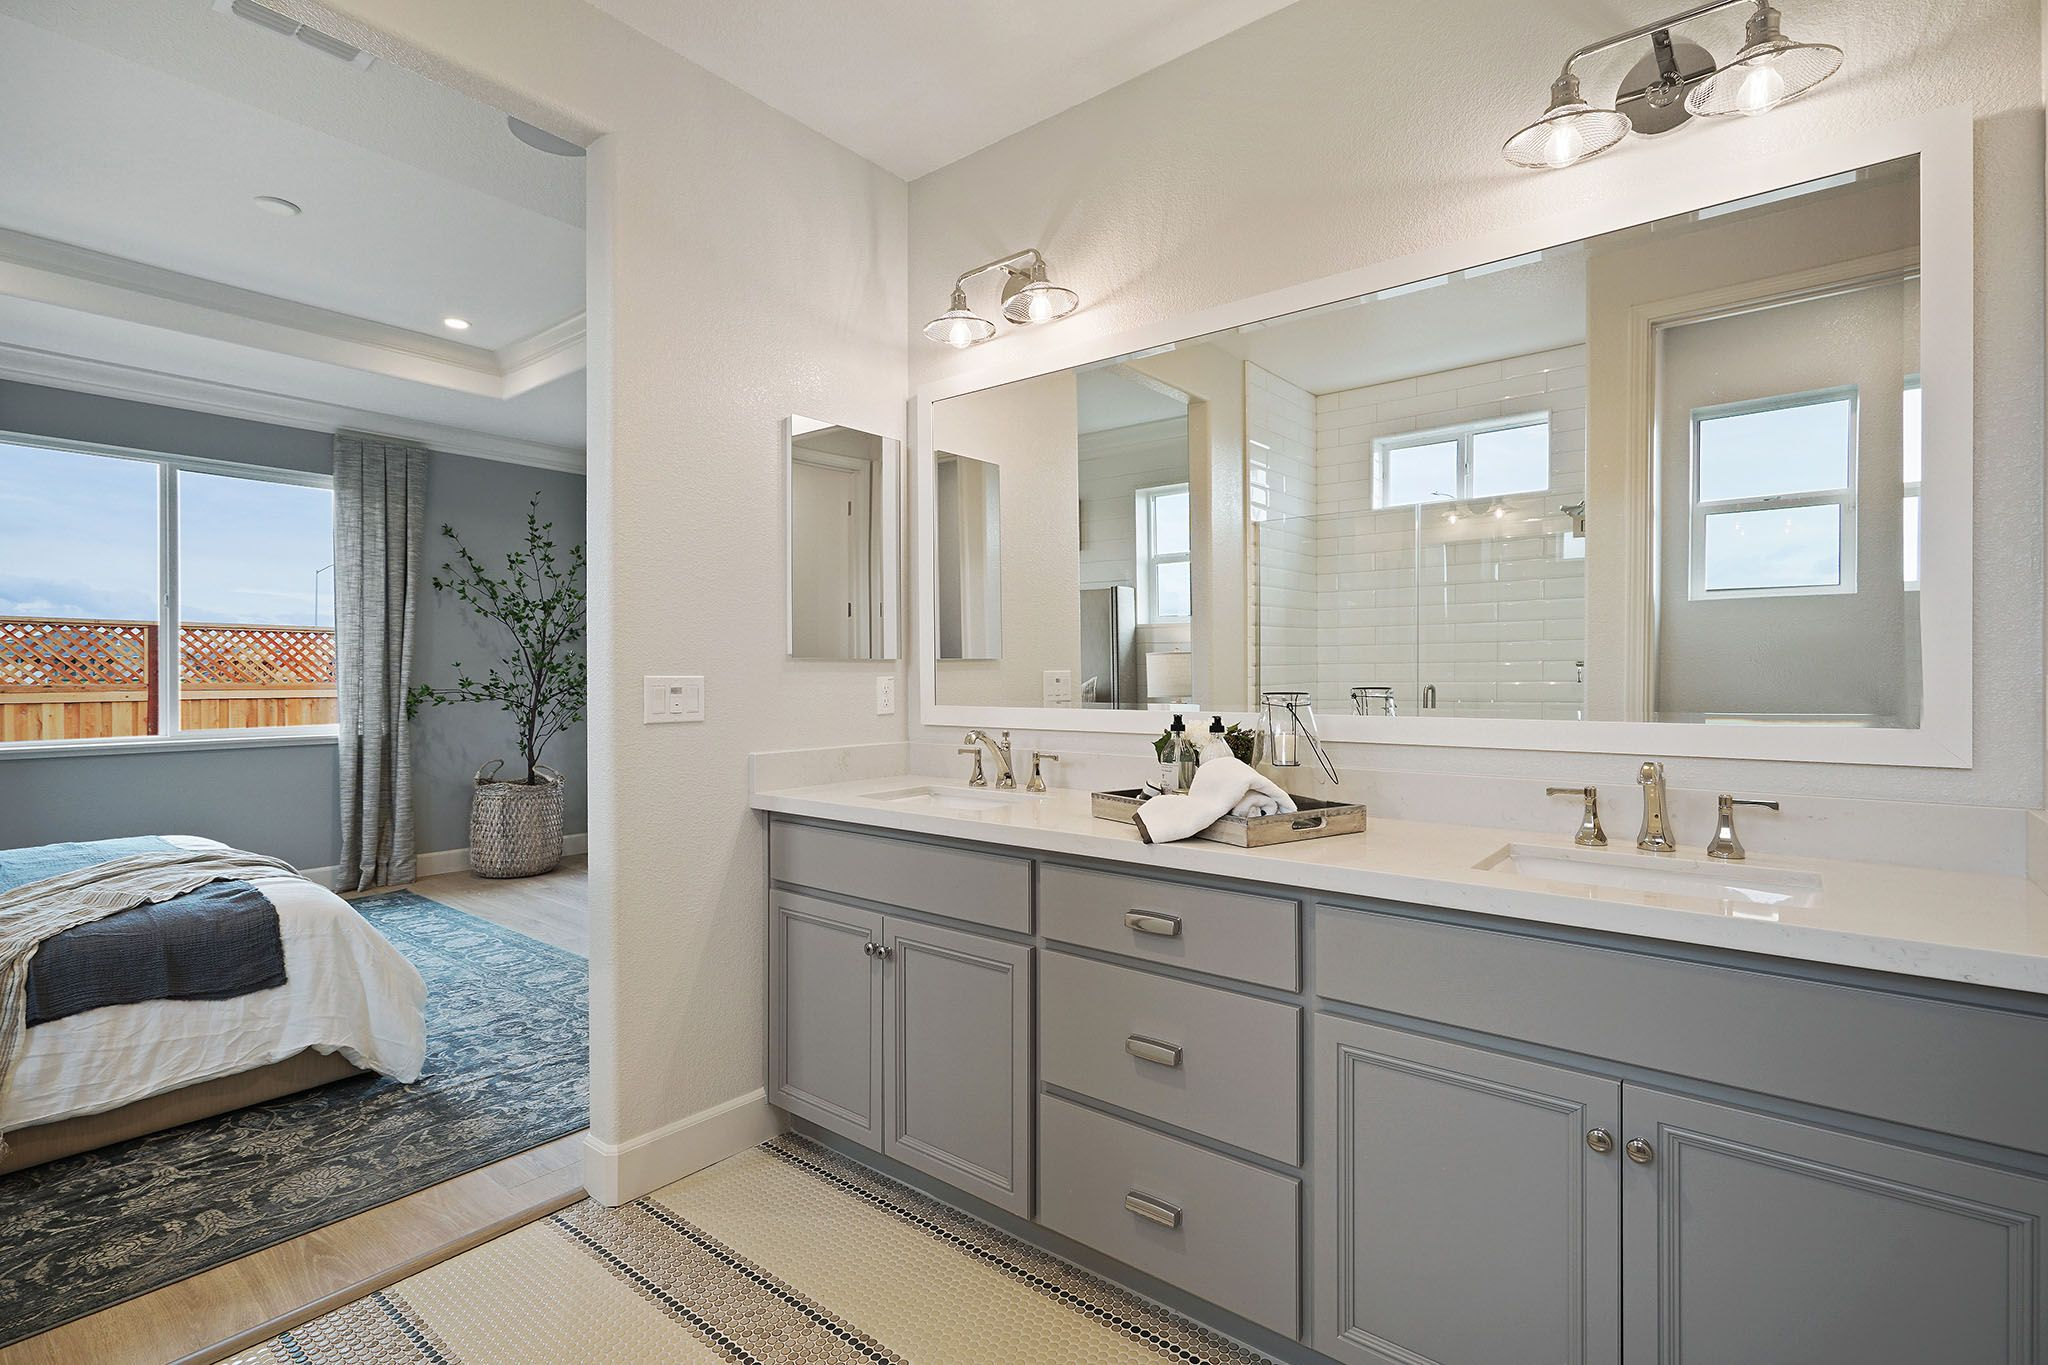 Bathroom featured in the Parker By Discovery Homes in Chico, CA